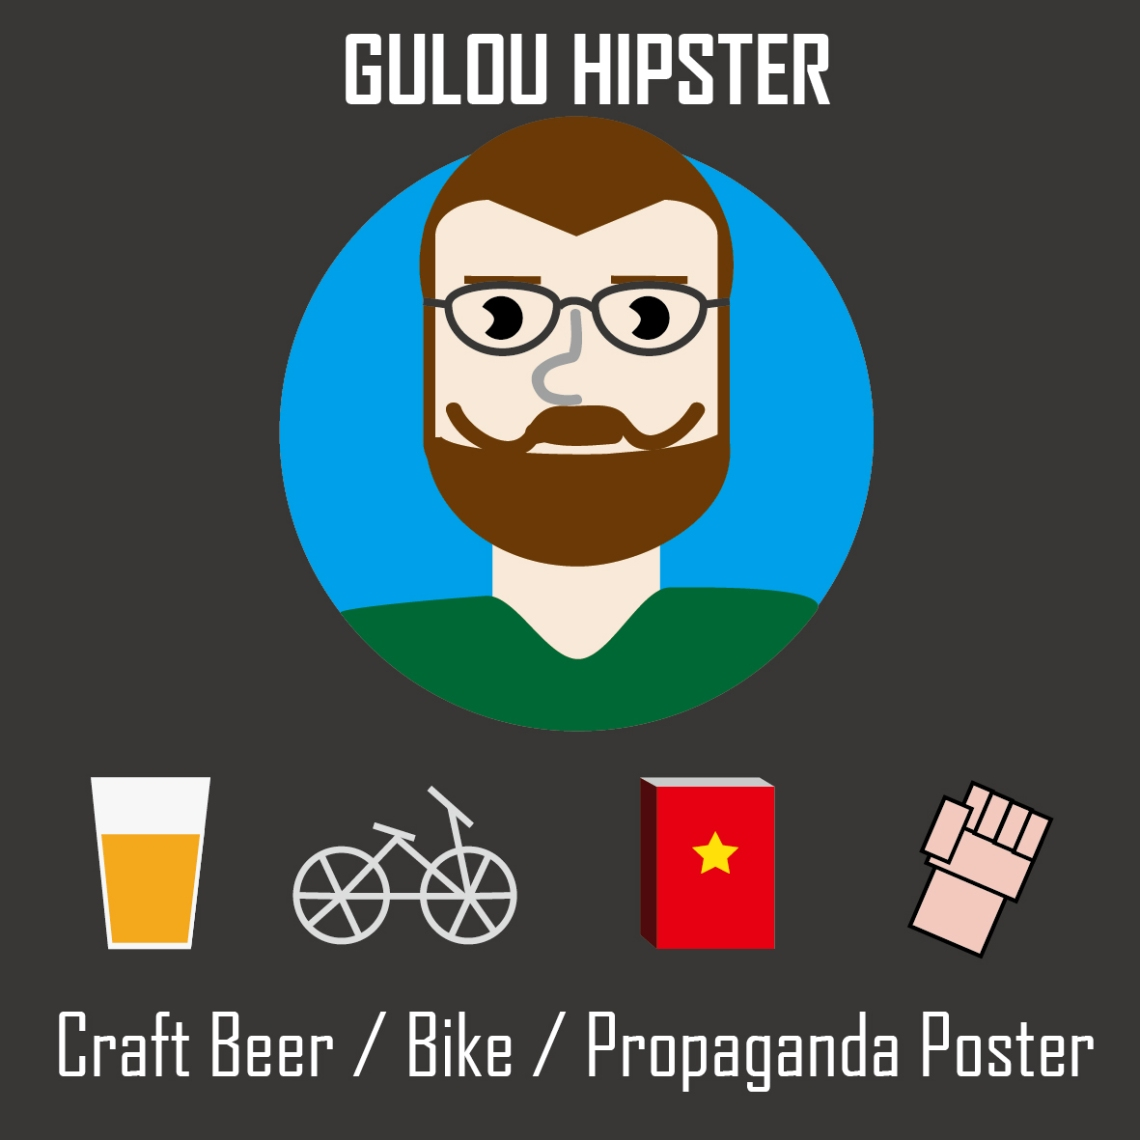 GulouHipster-01-01